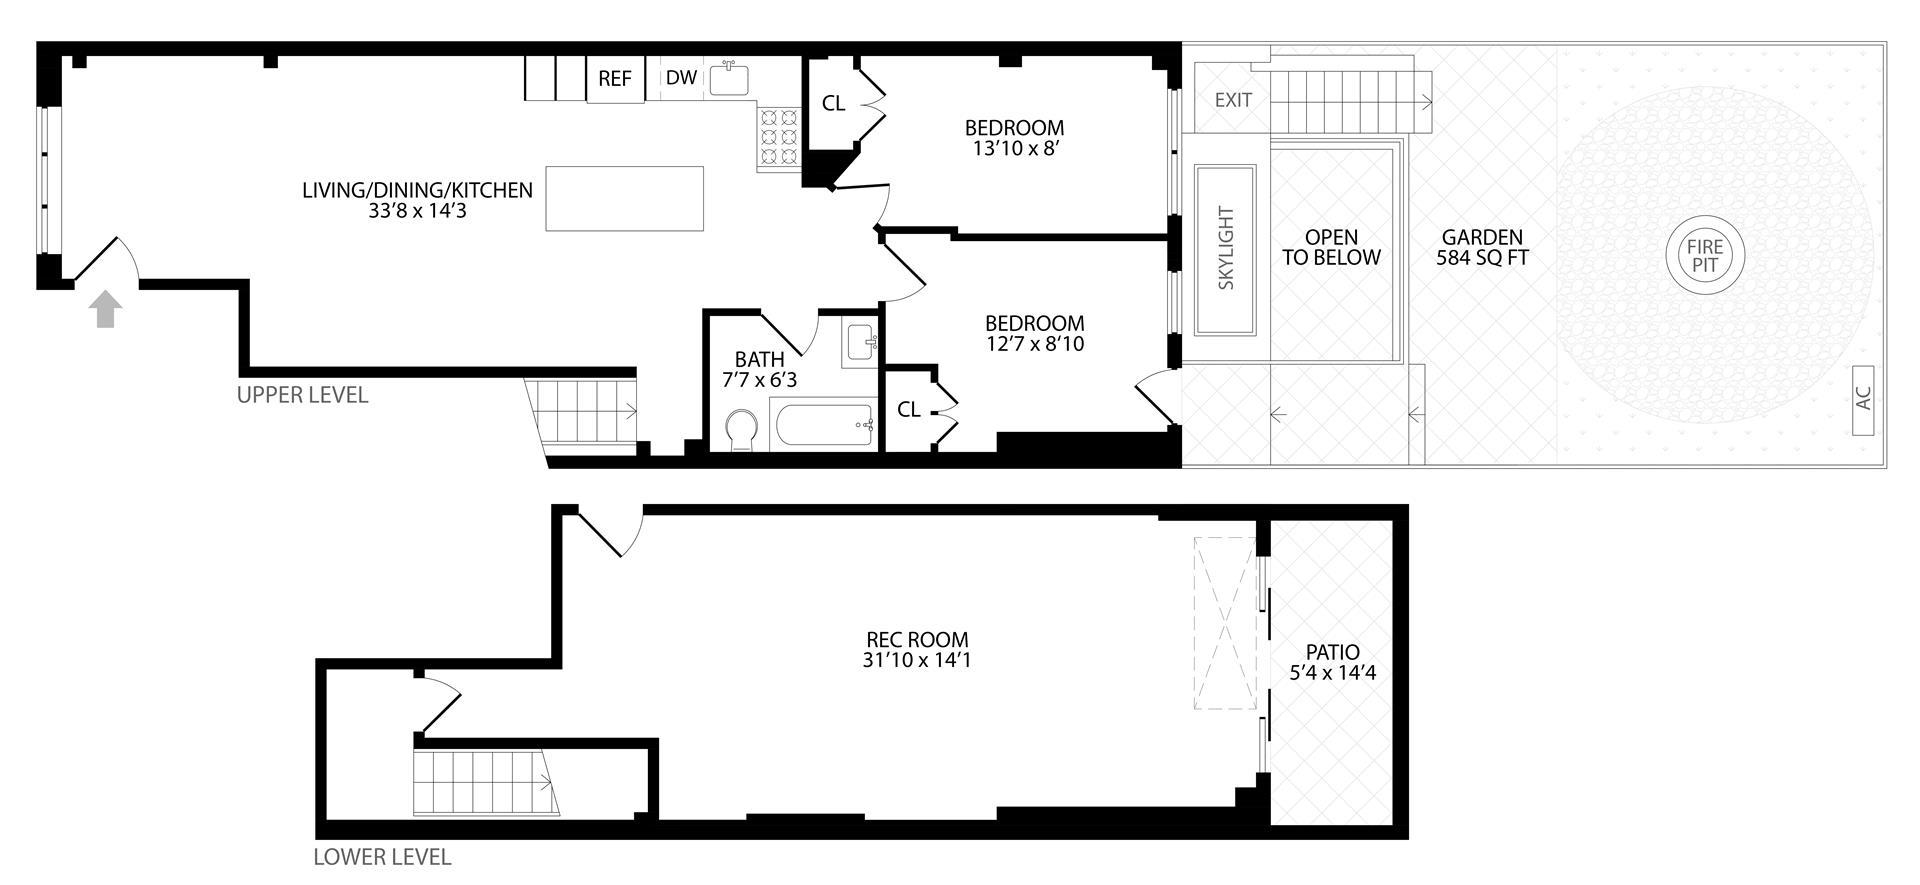 Floor plan of 219 Weirfield St, 1 - Bushwick, New York